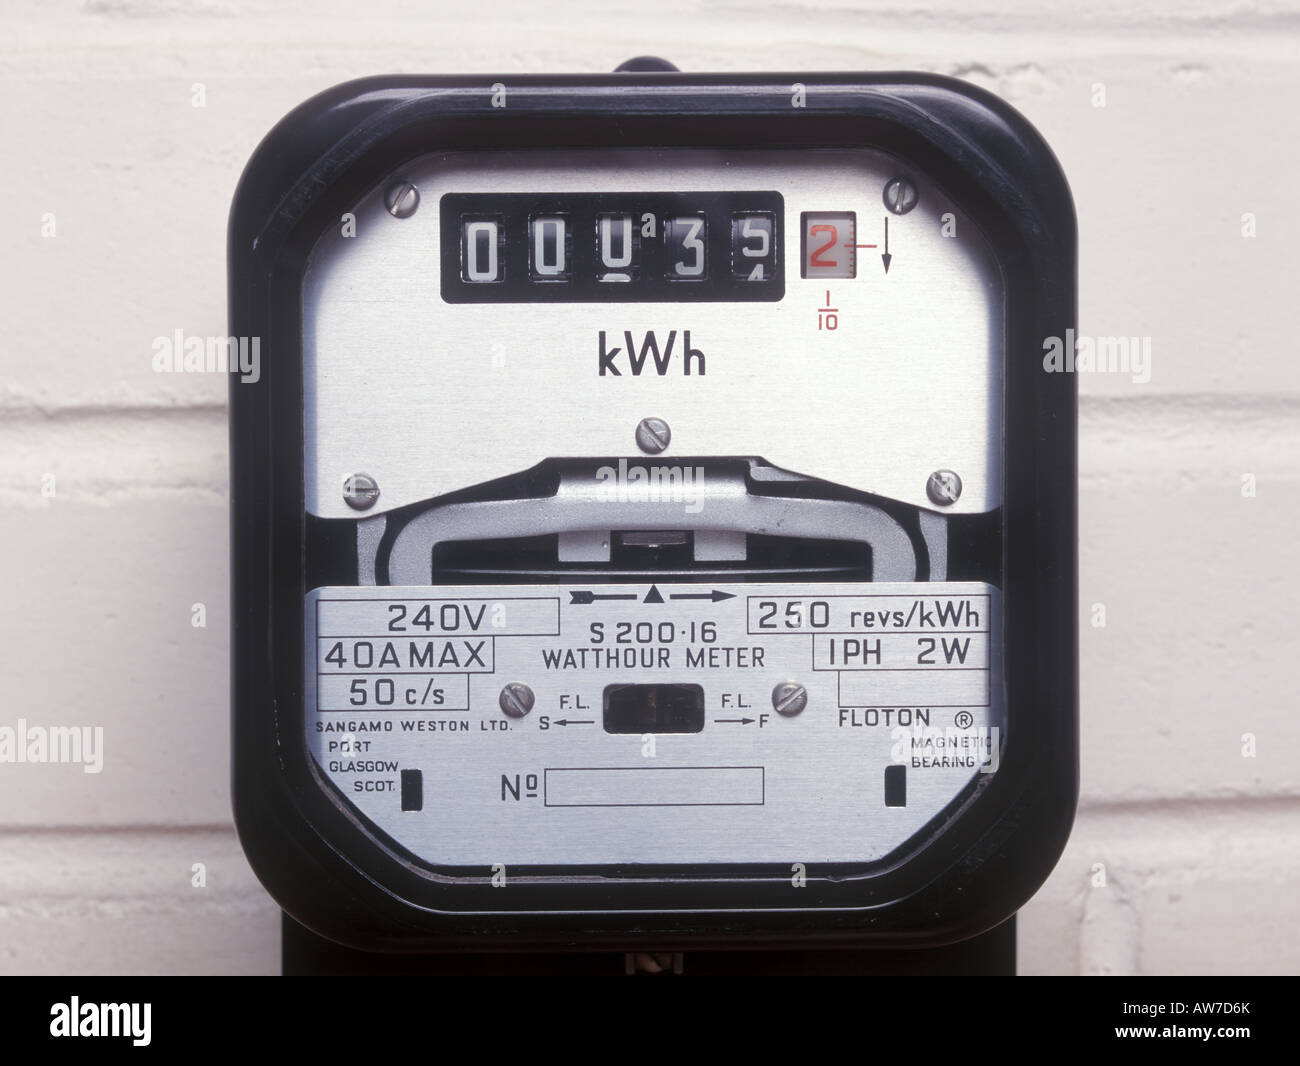 A kilowatt hour meter - Stock Image